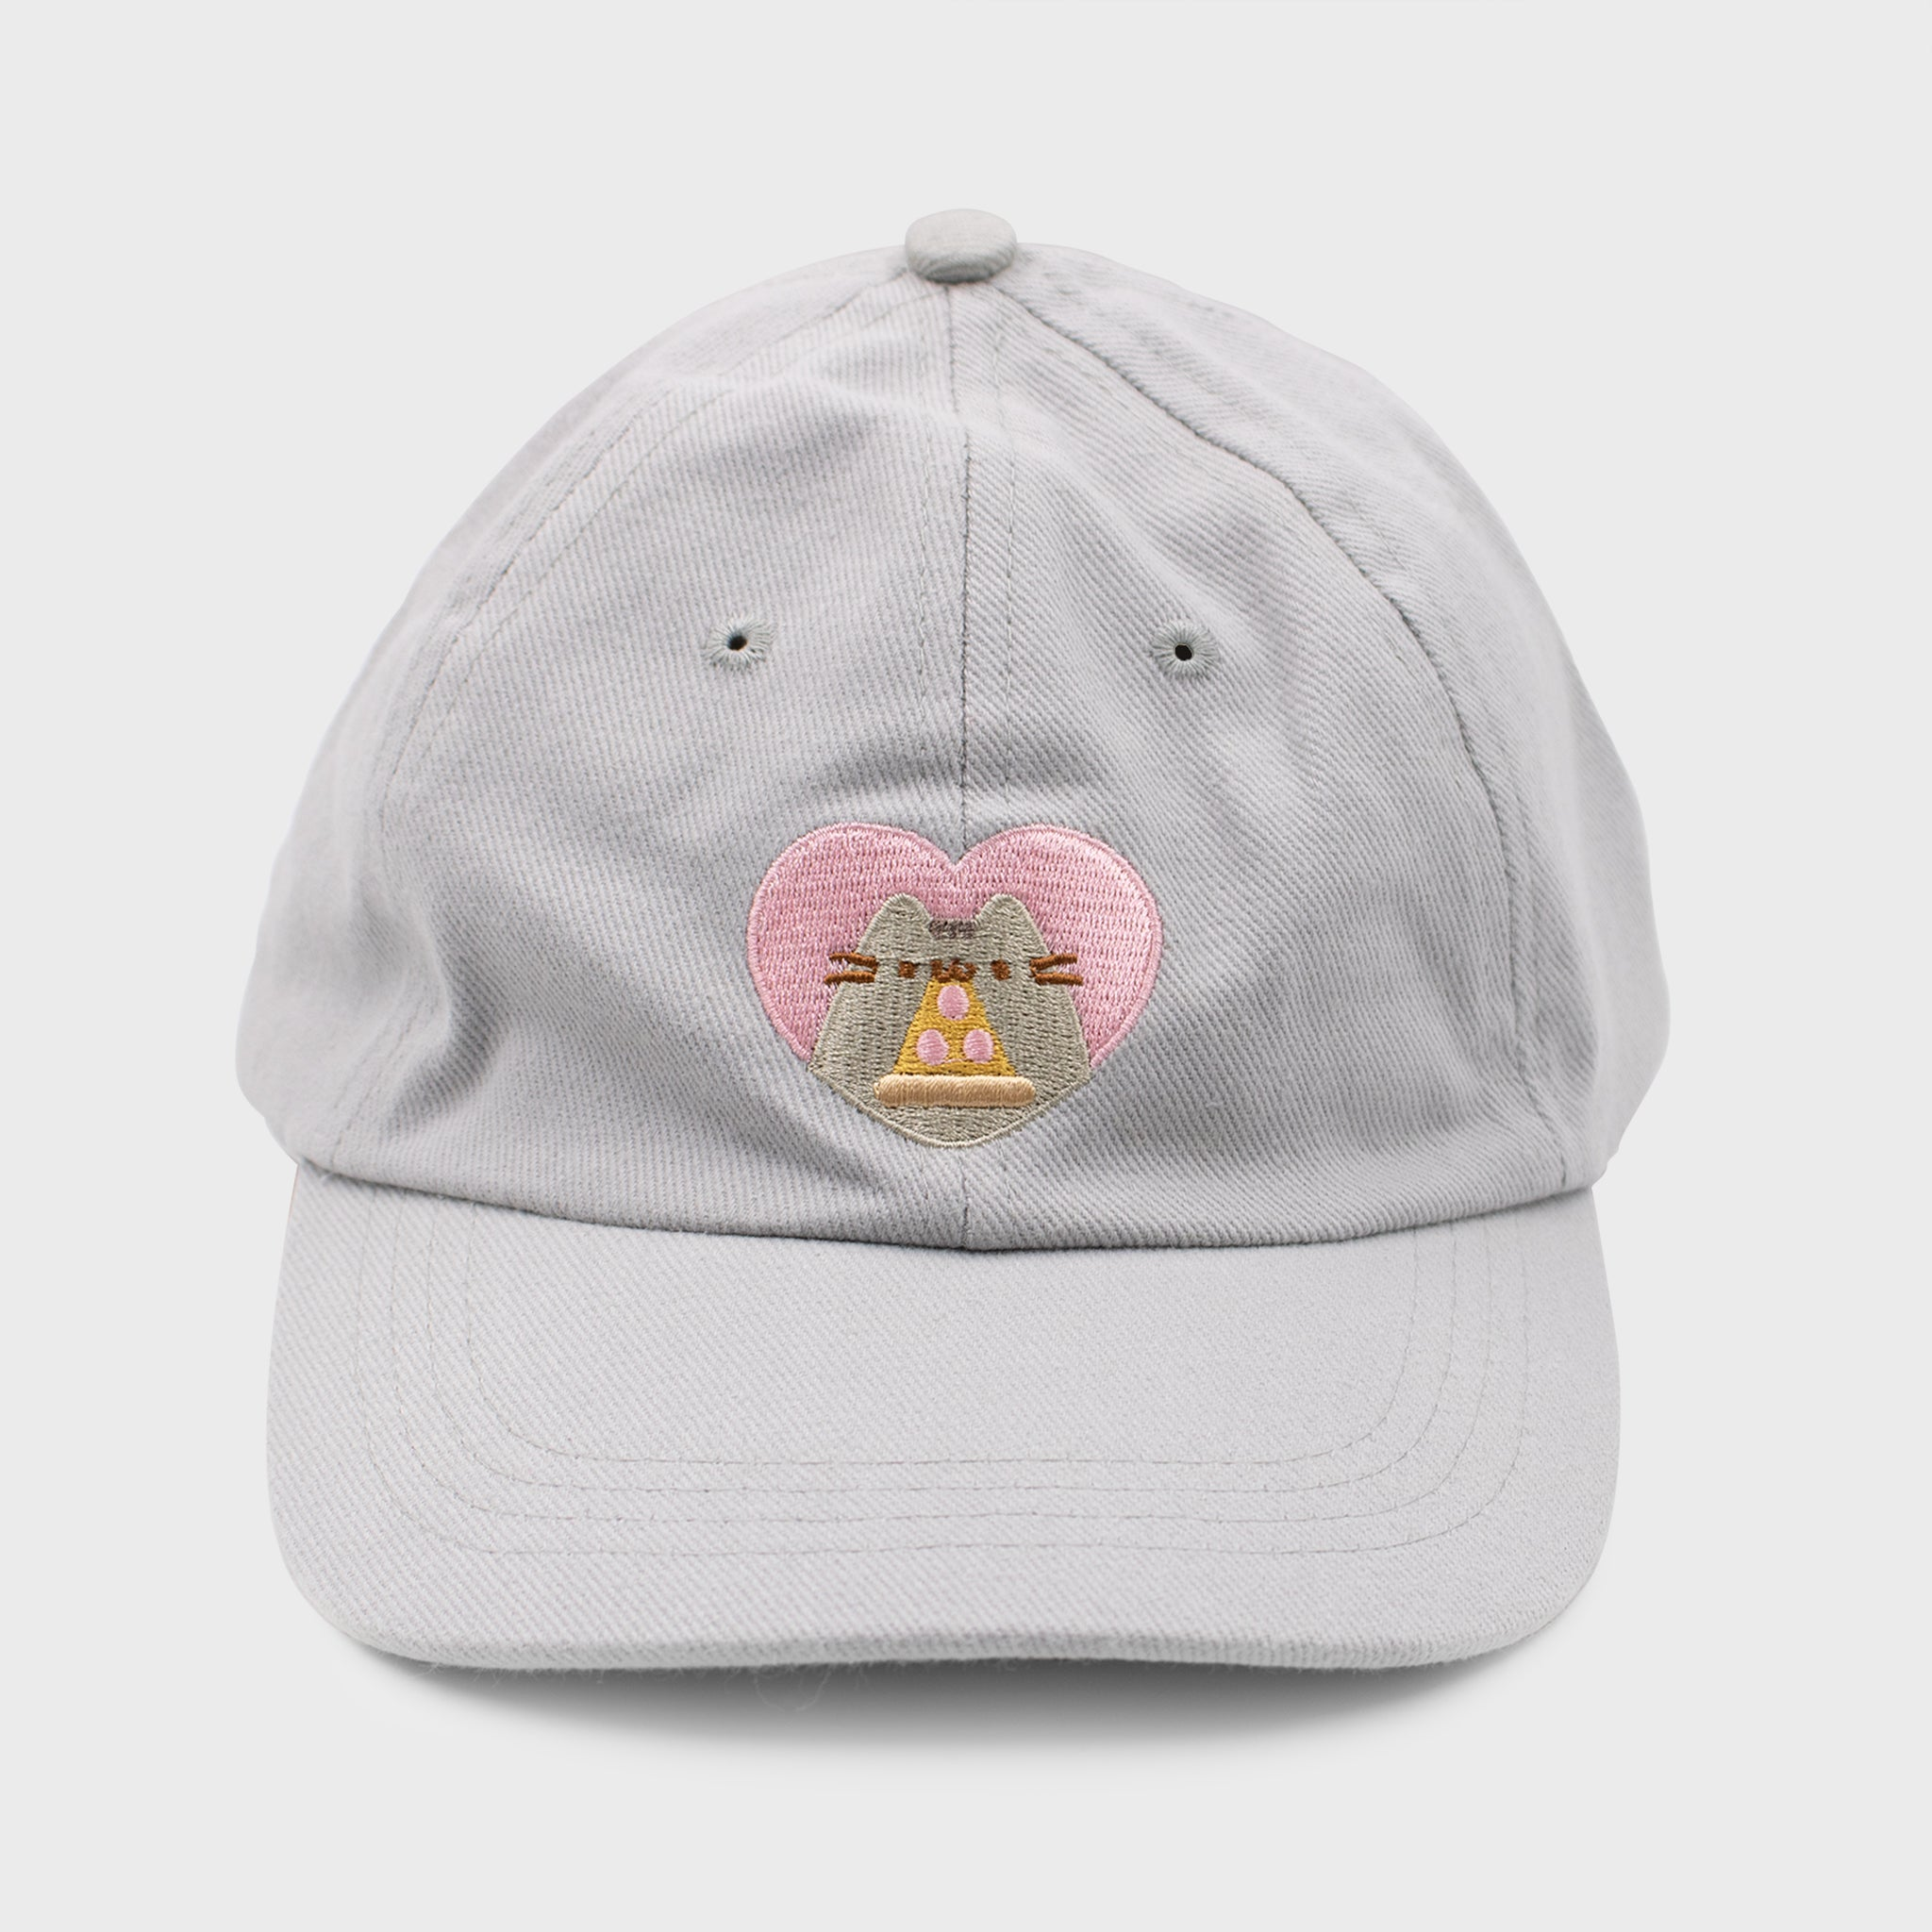 pusheen cap hat baseball cap dad hat pizza love cute cat culturefly